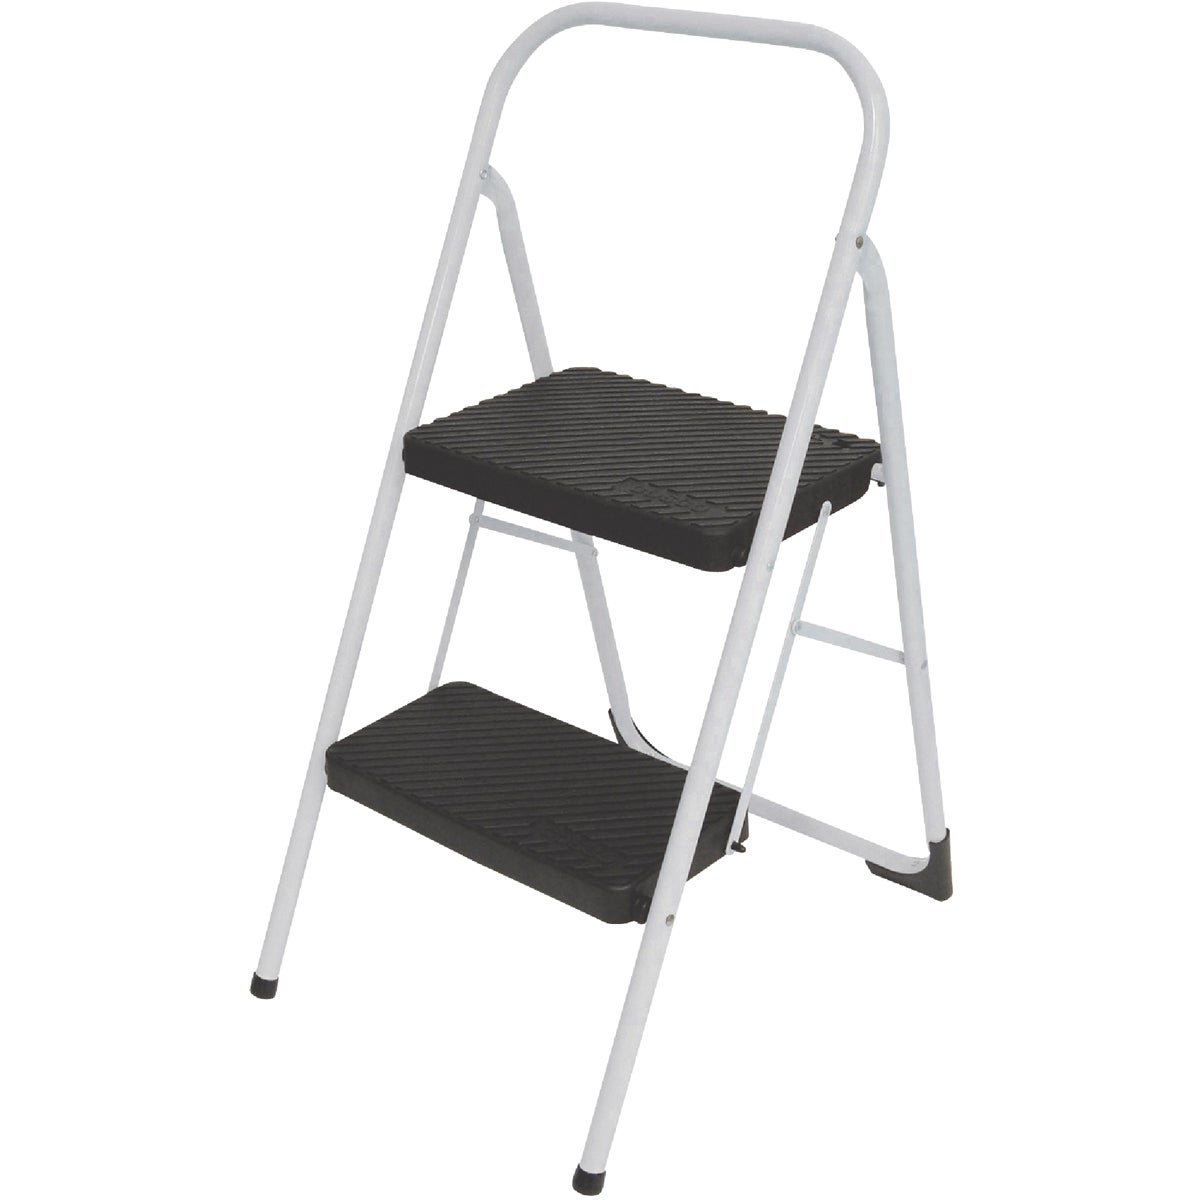 FOLDING STEP STOOL - 11-565CLGG4 by Cosco    J Myalls